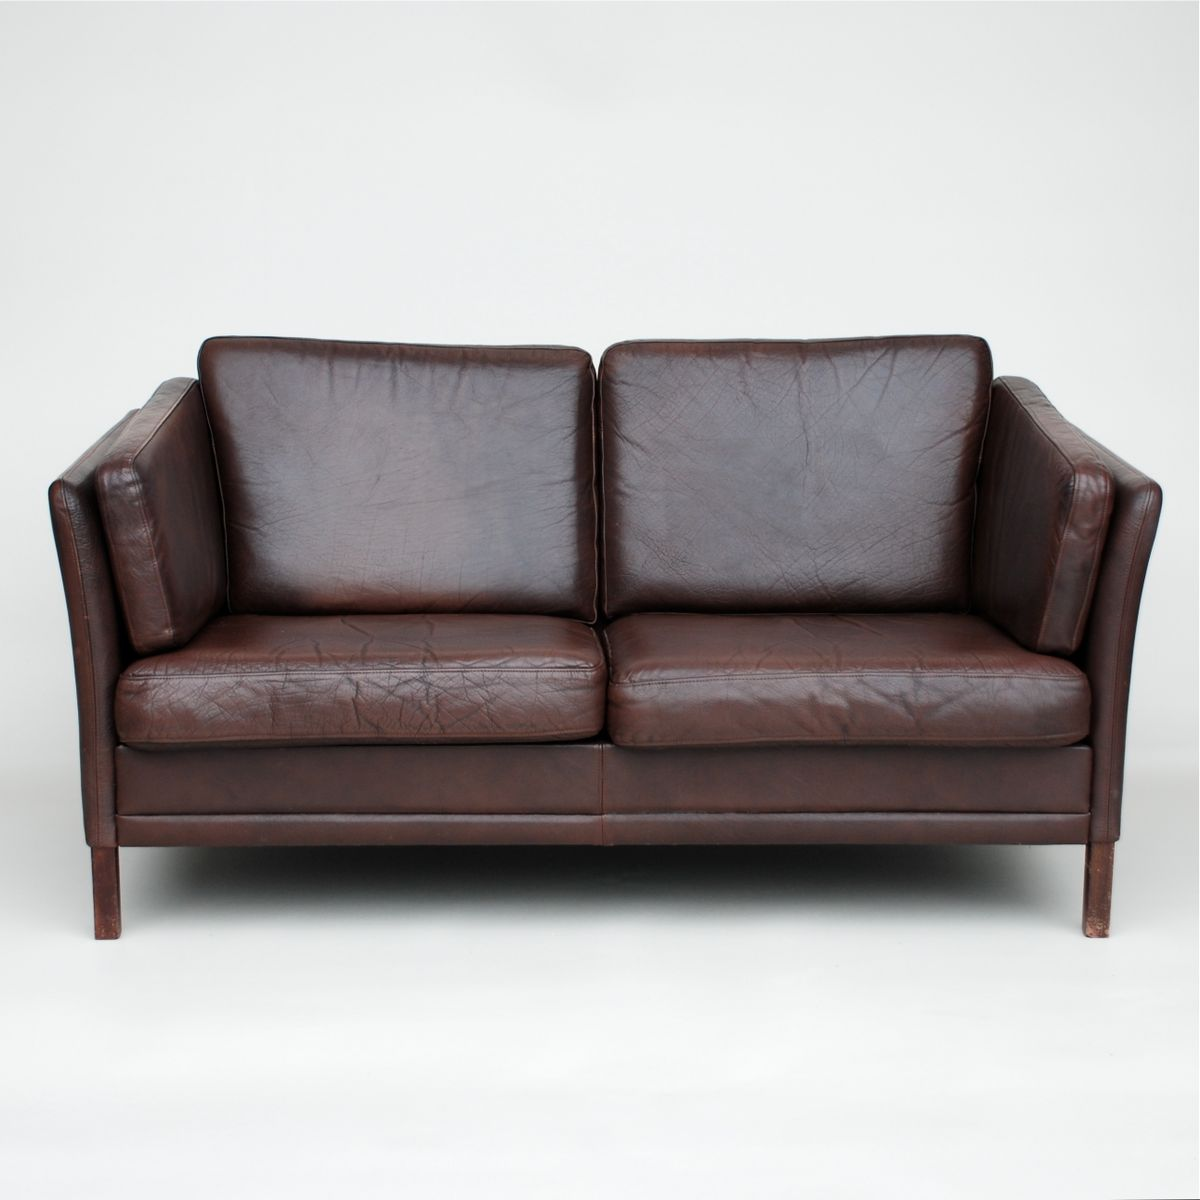 Danish Dark Brown Leather Sofa 1970s For Sale At Pamono